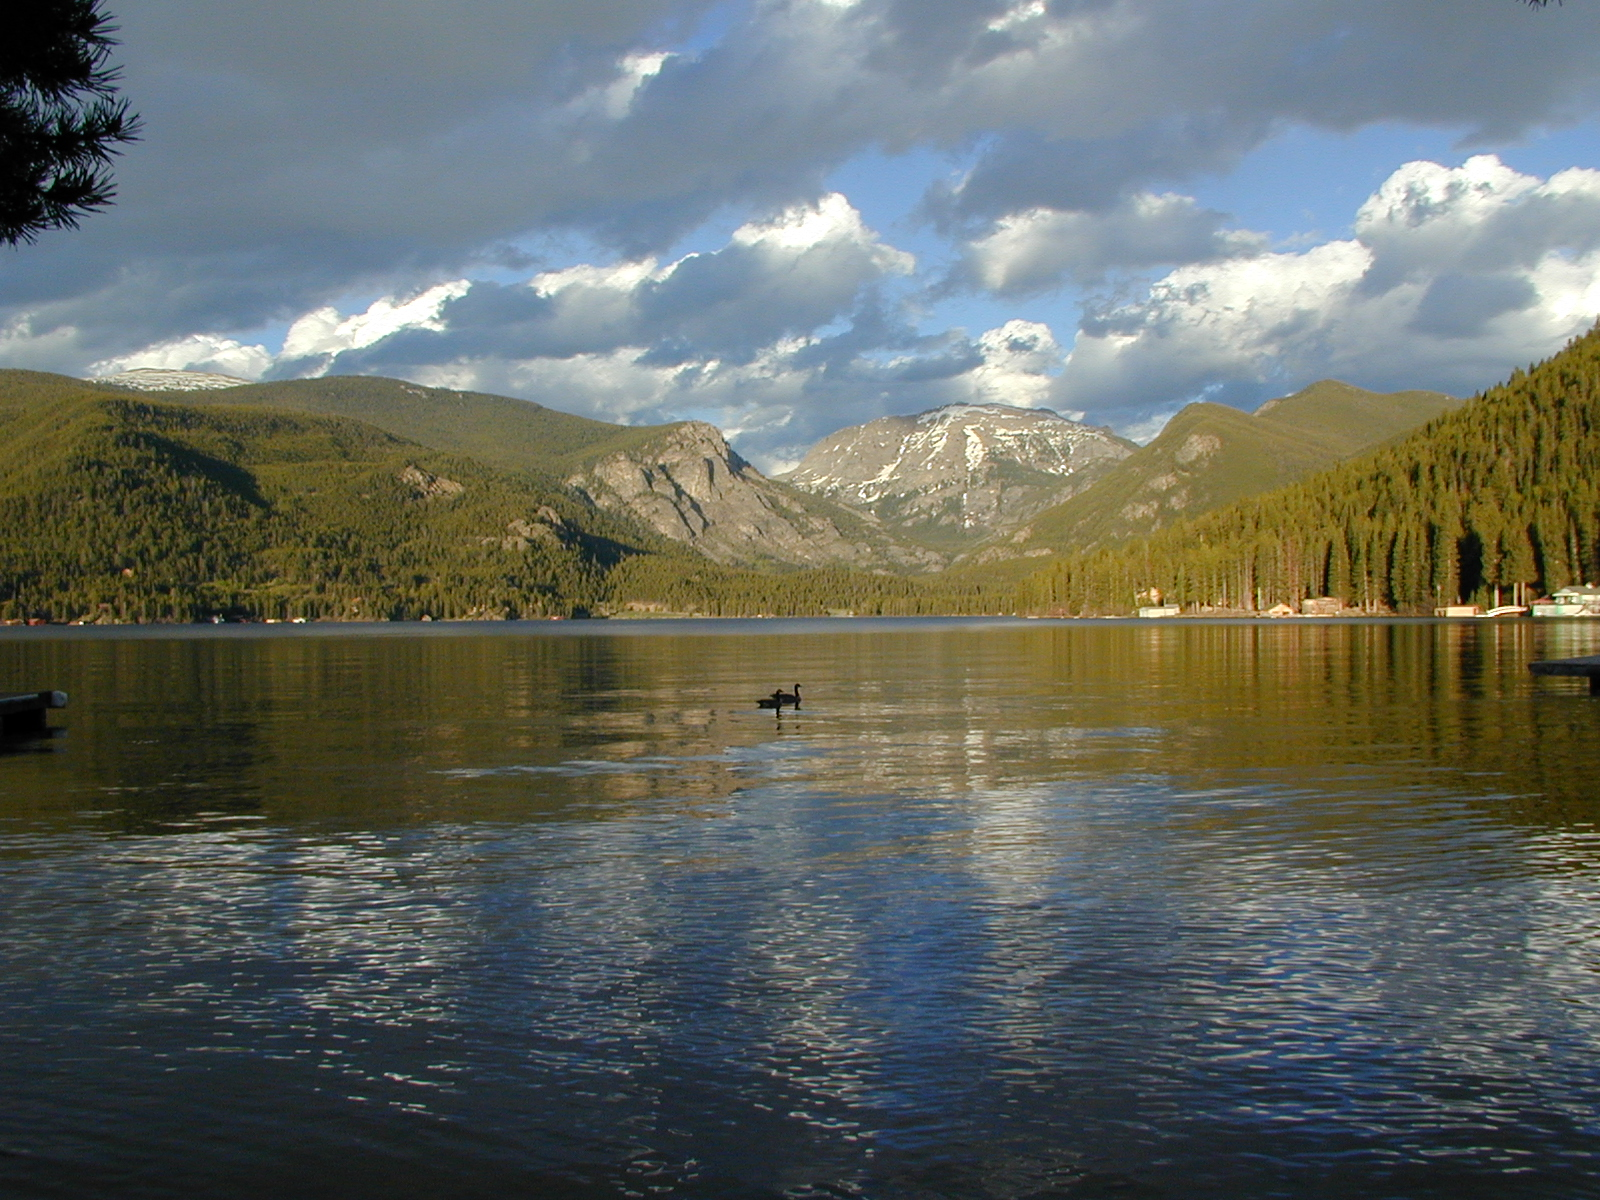 File:Grand Lake.jpg - Wikimedia Commons